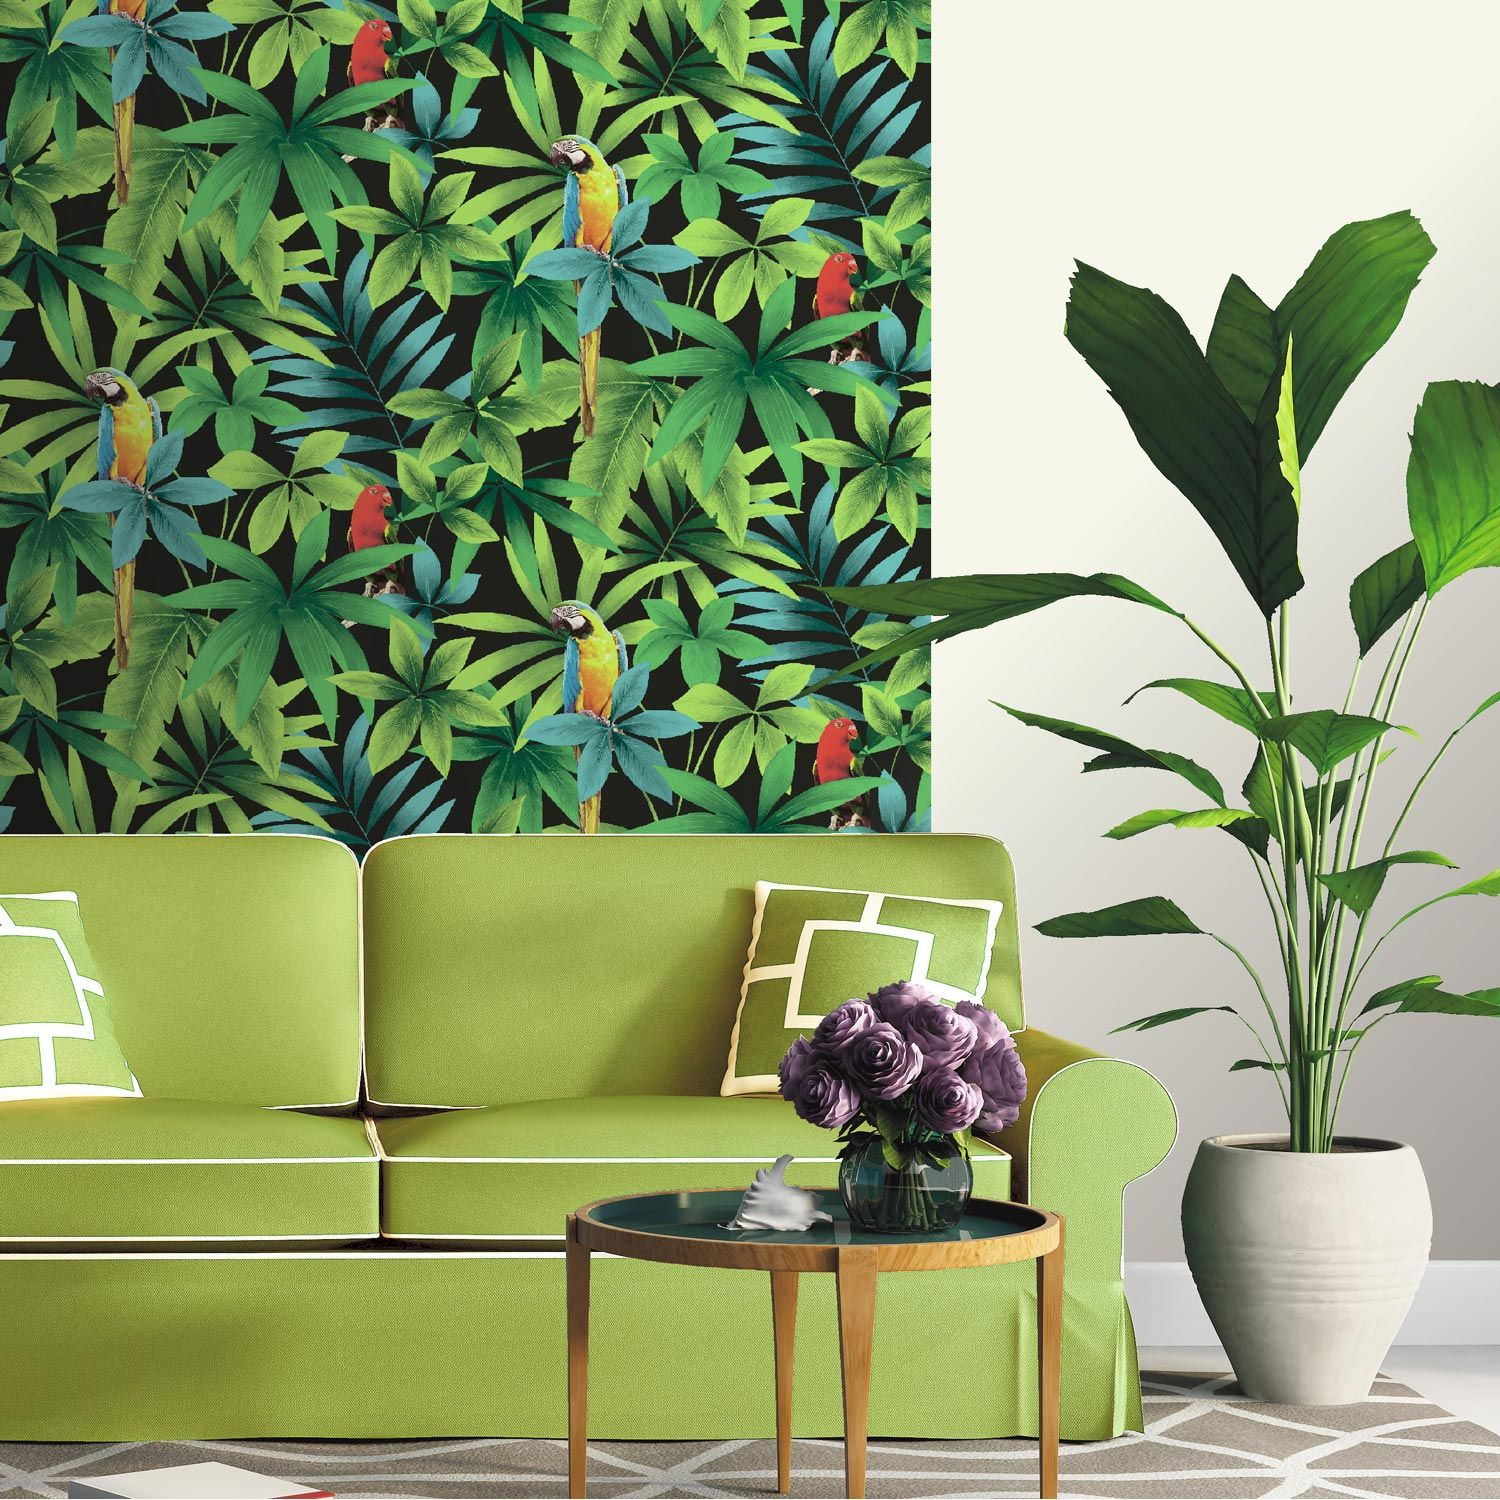 papier peint motif jungle en vert for t chez leroy merlin 9 rouleau shopping papier. Black Bedroom Furniture Sets. Home Design Ideas